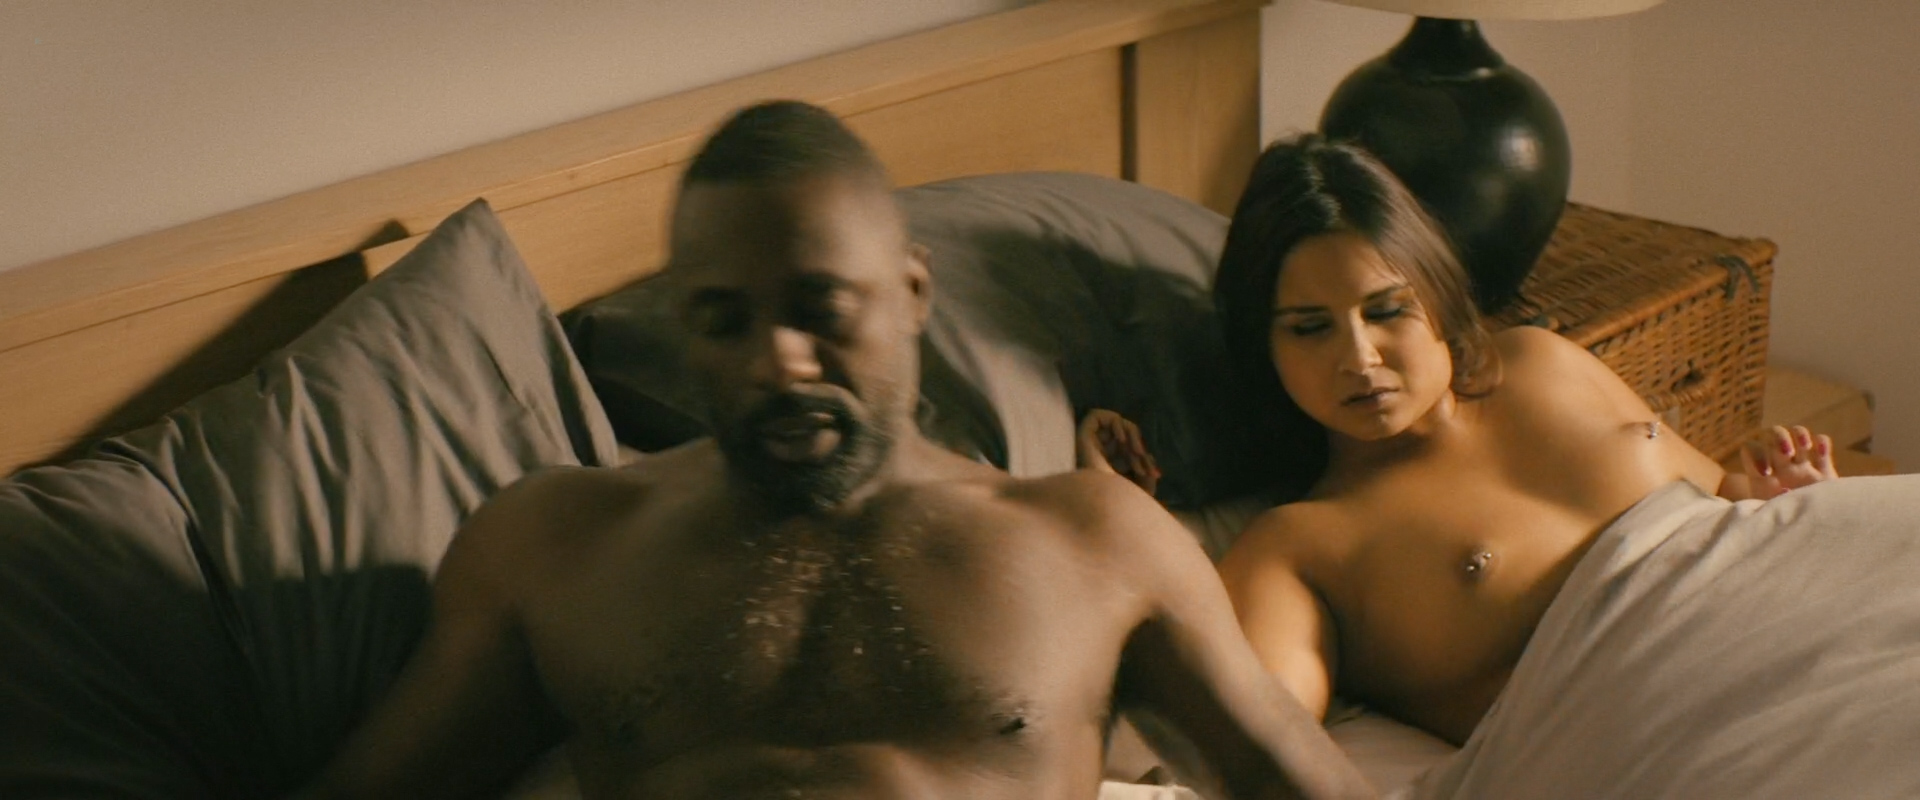 Gemma arterton sex video